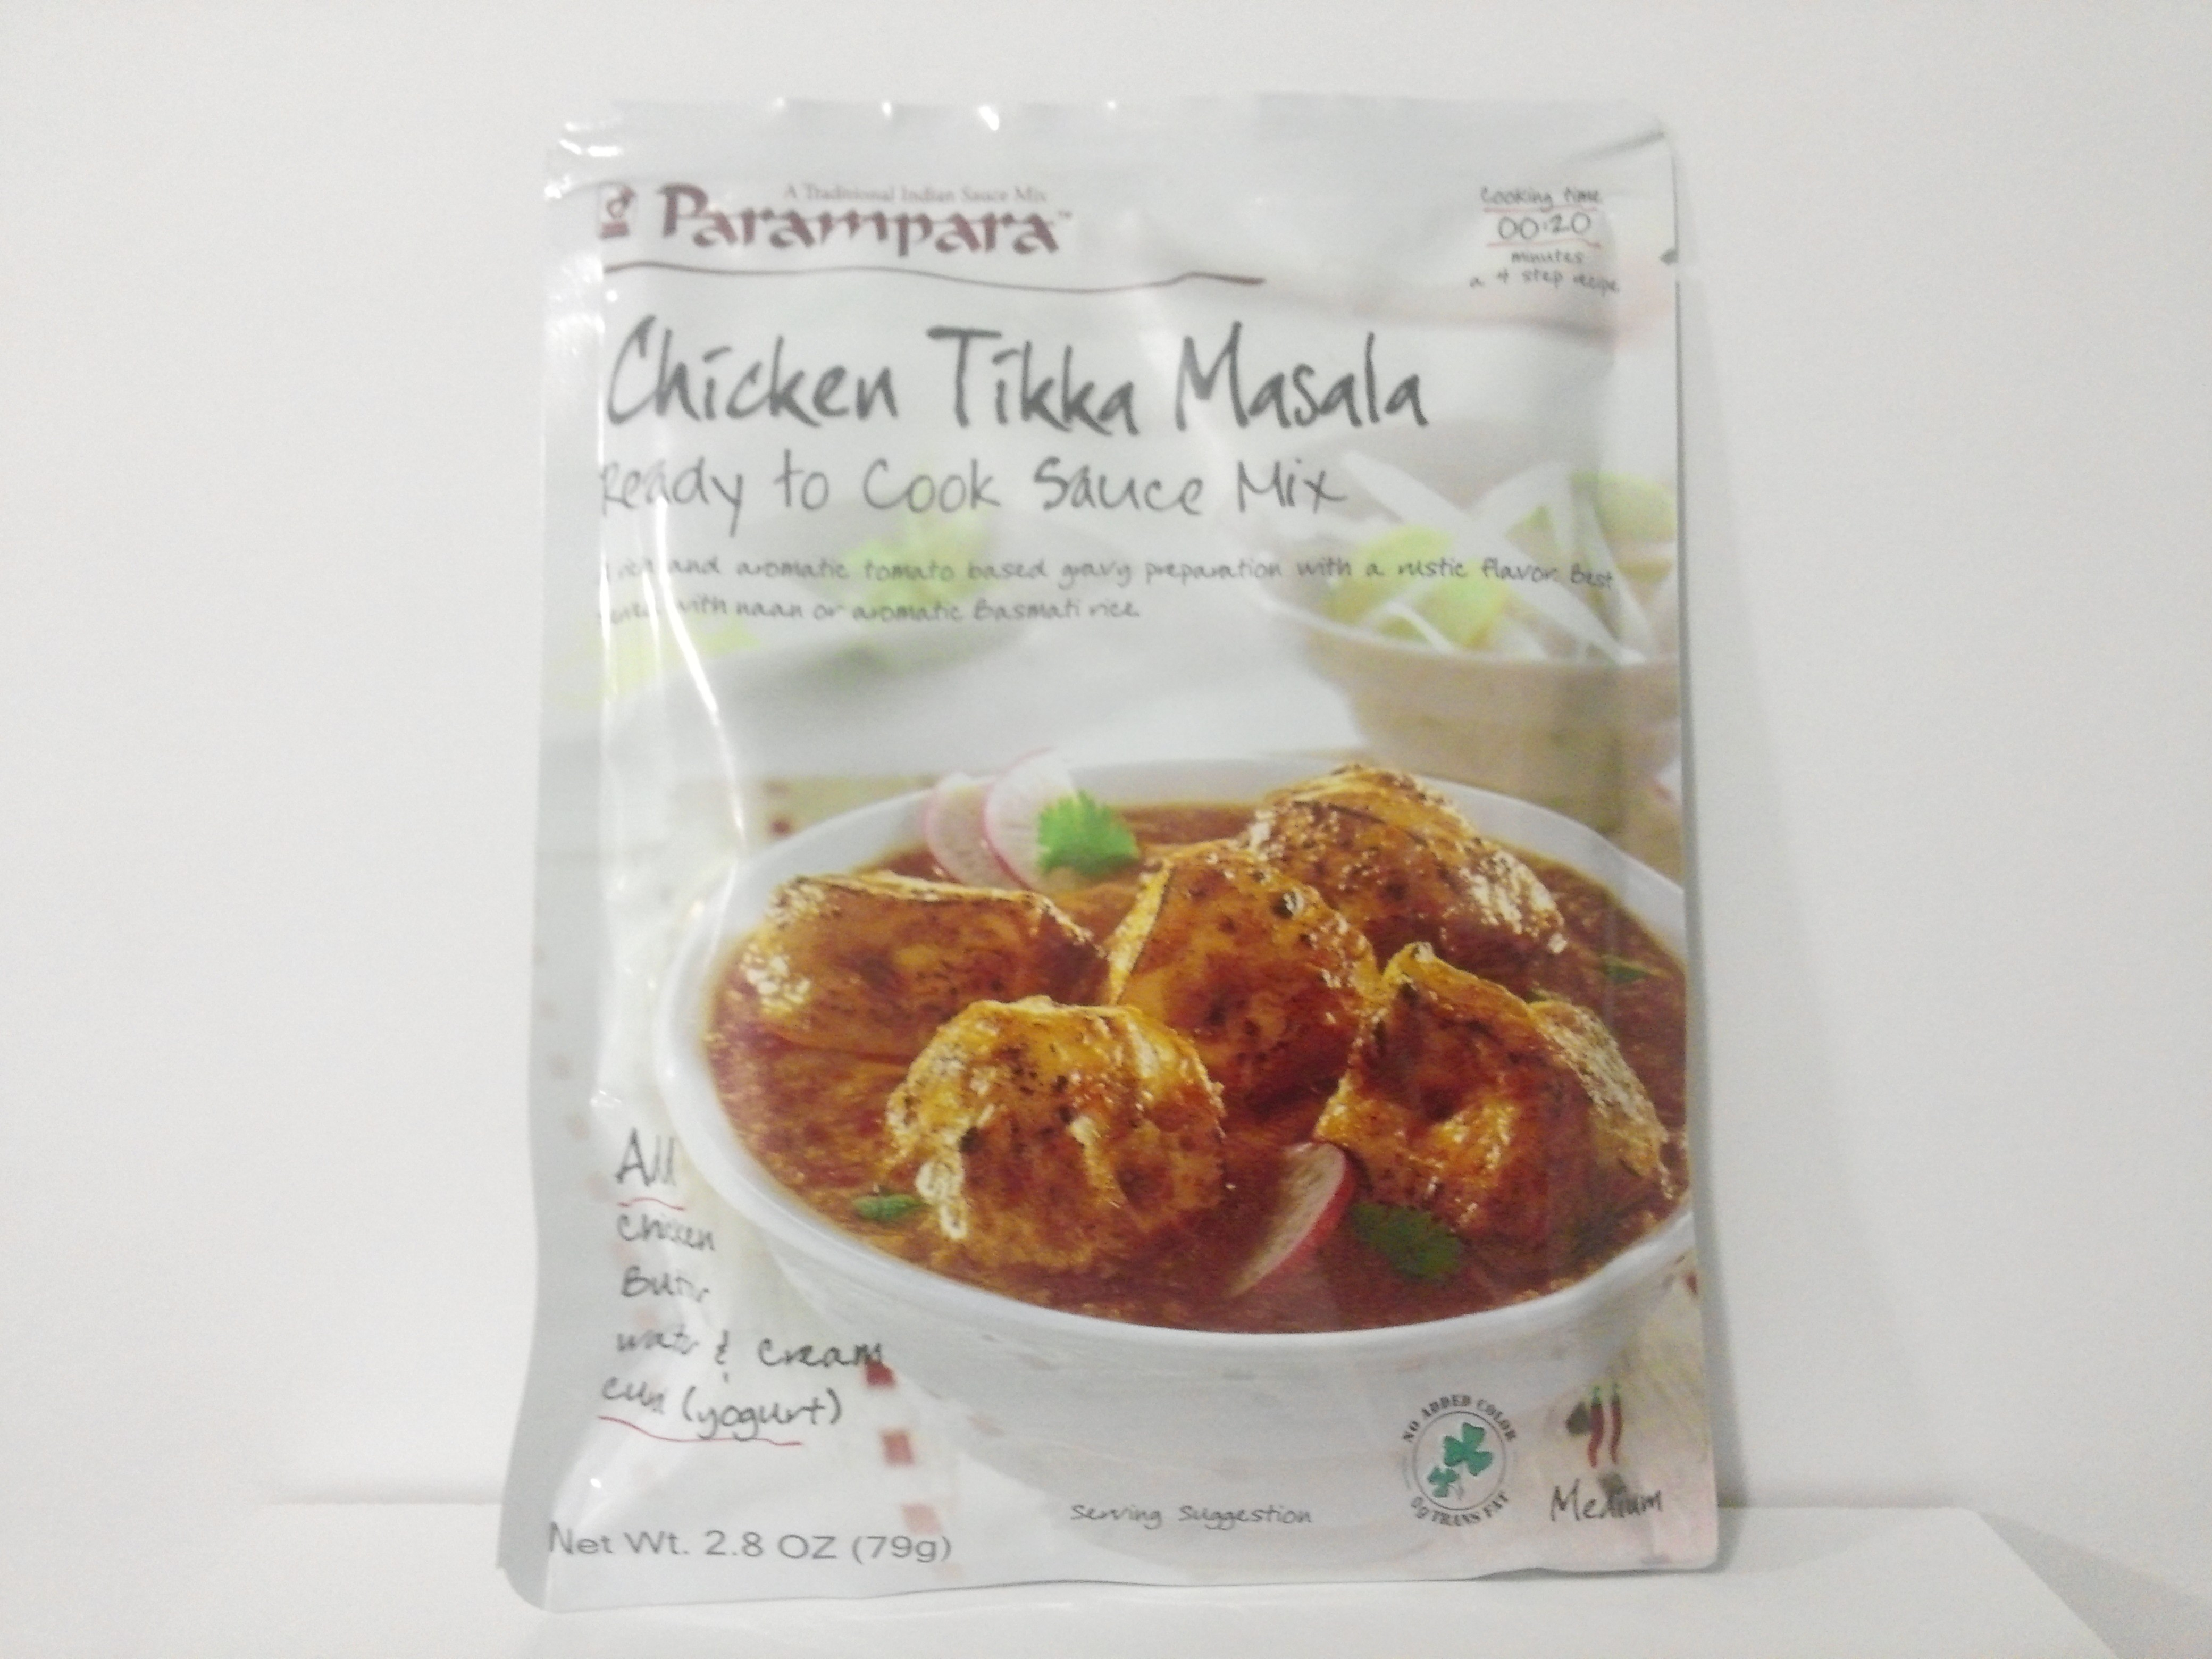 Parampara Chicken Tikka Masala 2.8 oz